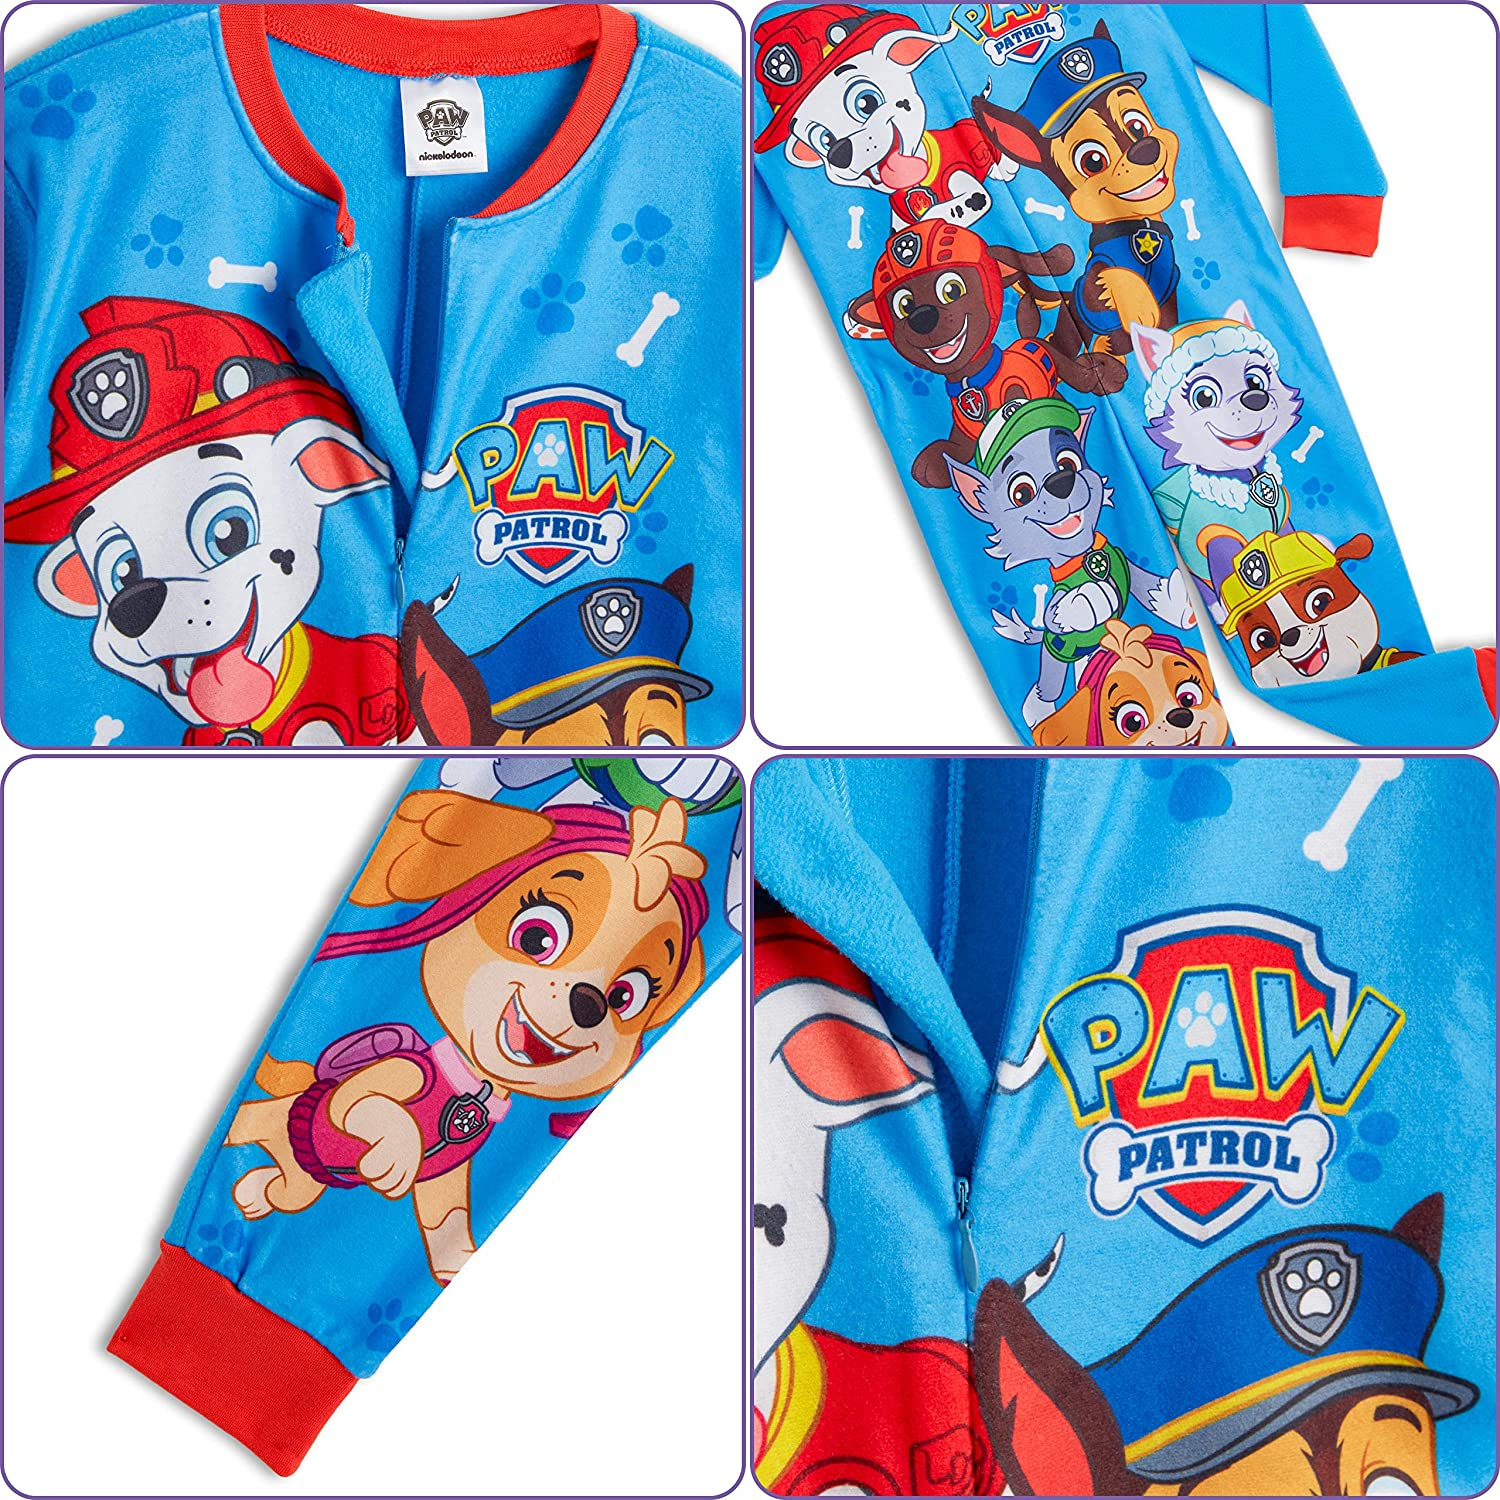 Skye All in One Children PJ Jumpsuit Children/'s Onesie Characters Paw Patrol Onesie for Kids Chase and Marshall Onesie Pyjama for Boys and Girls